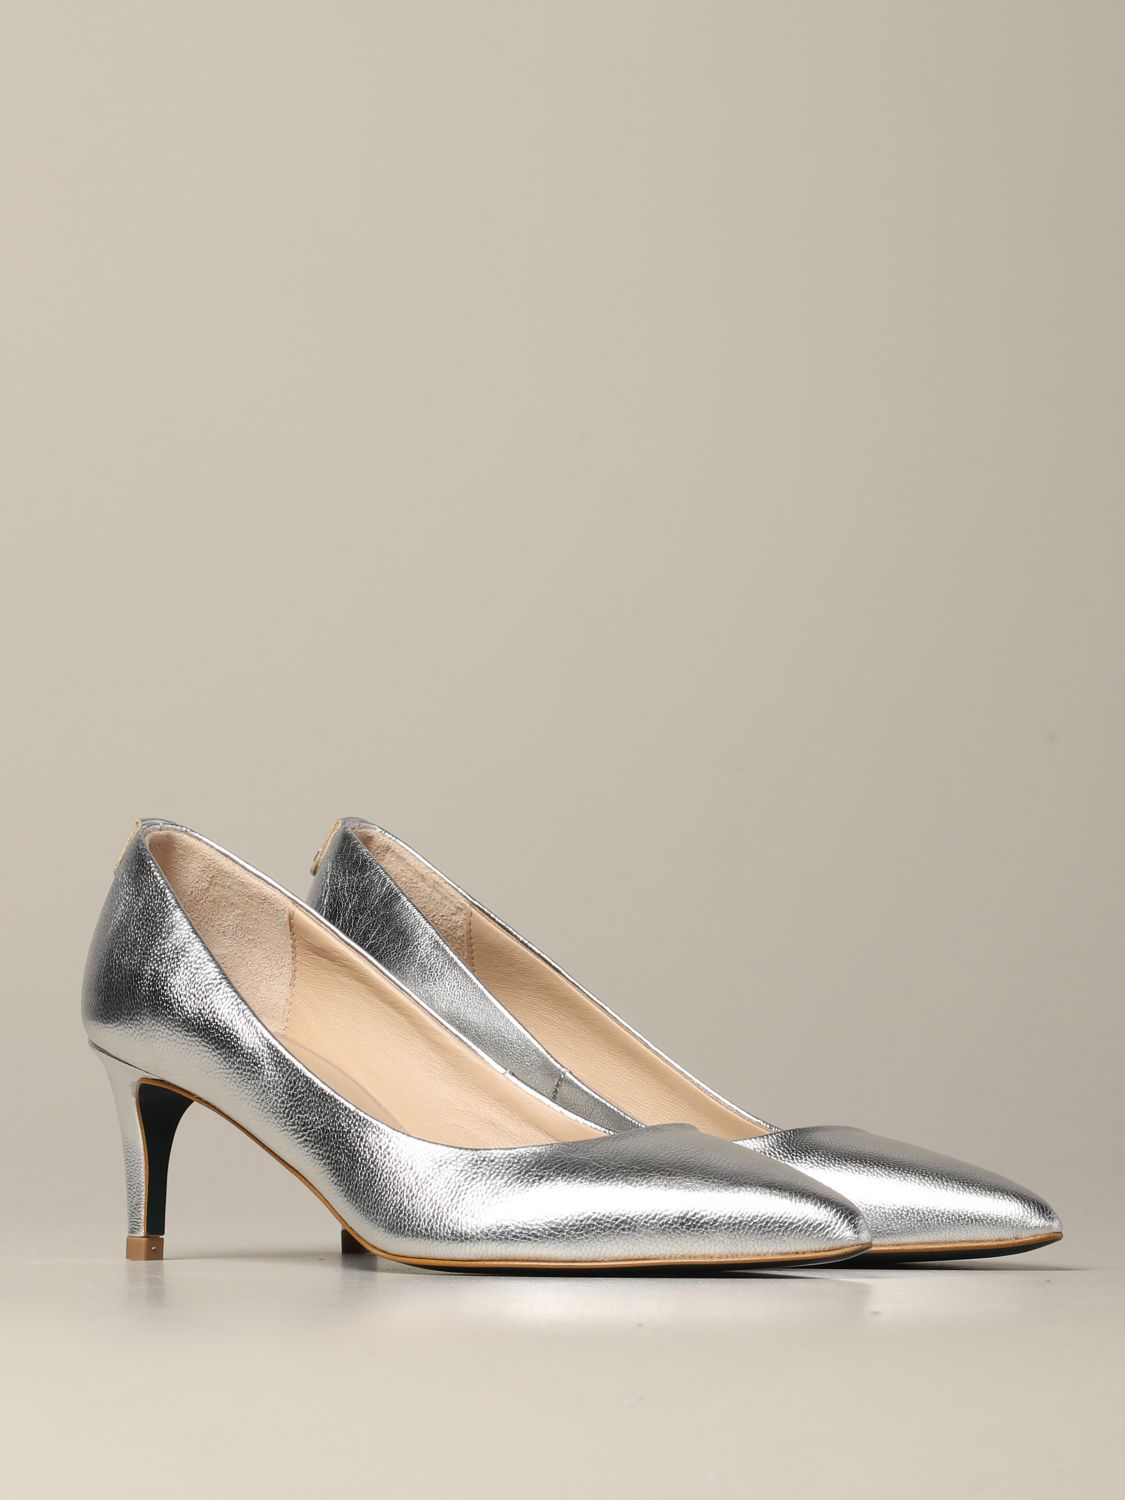 Patrizia Pepe pumps in laminated leather silver 2